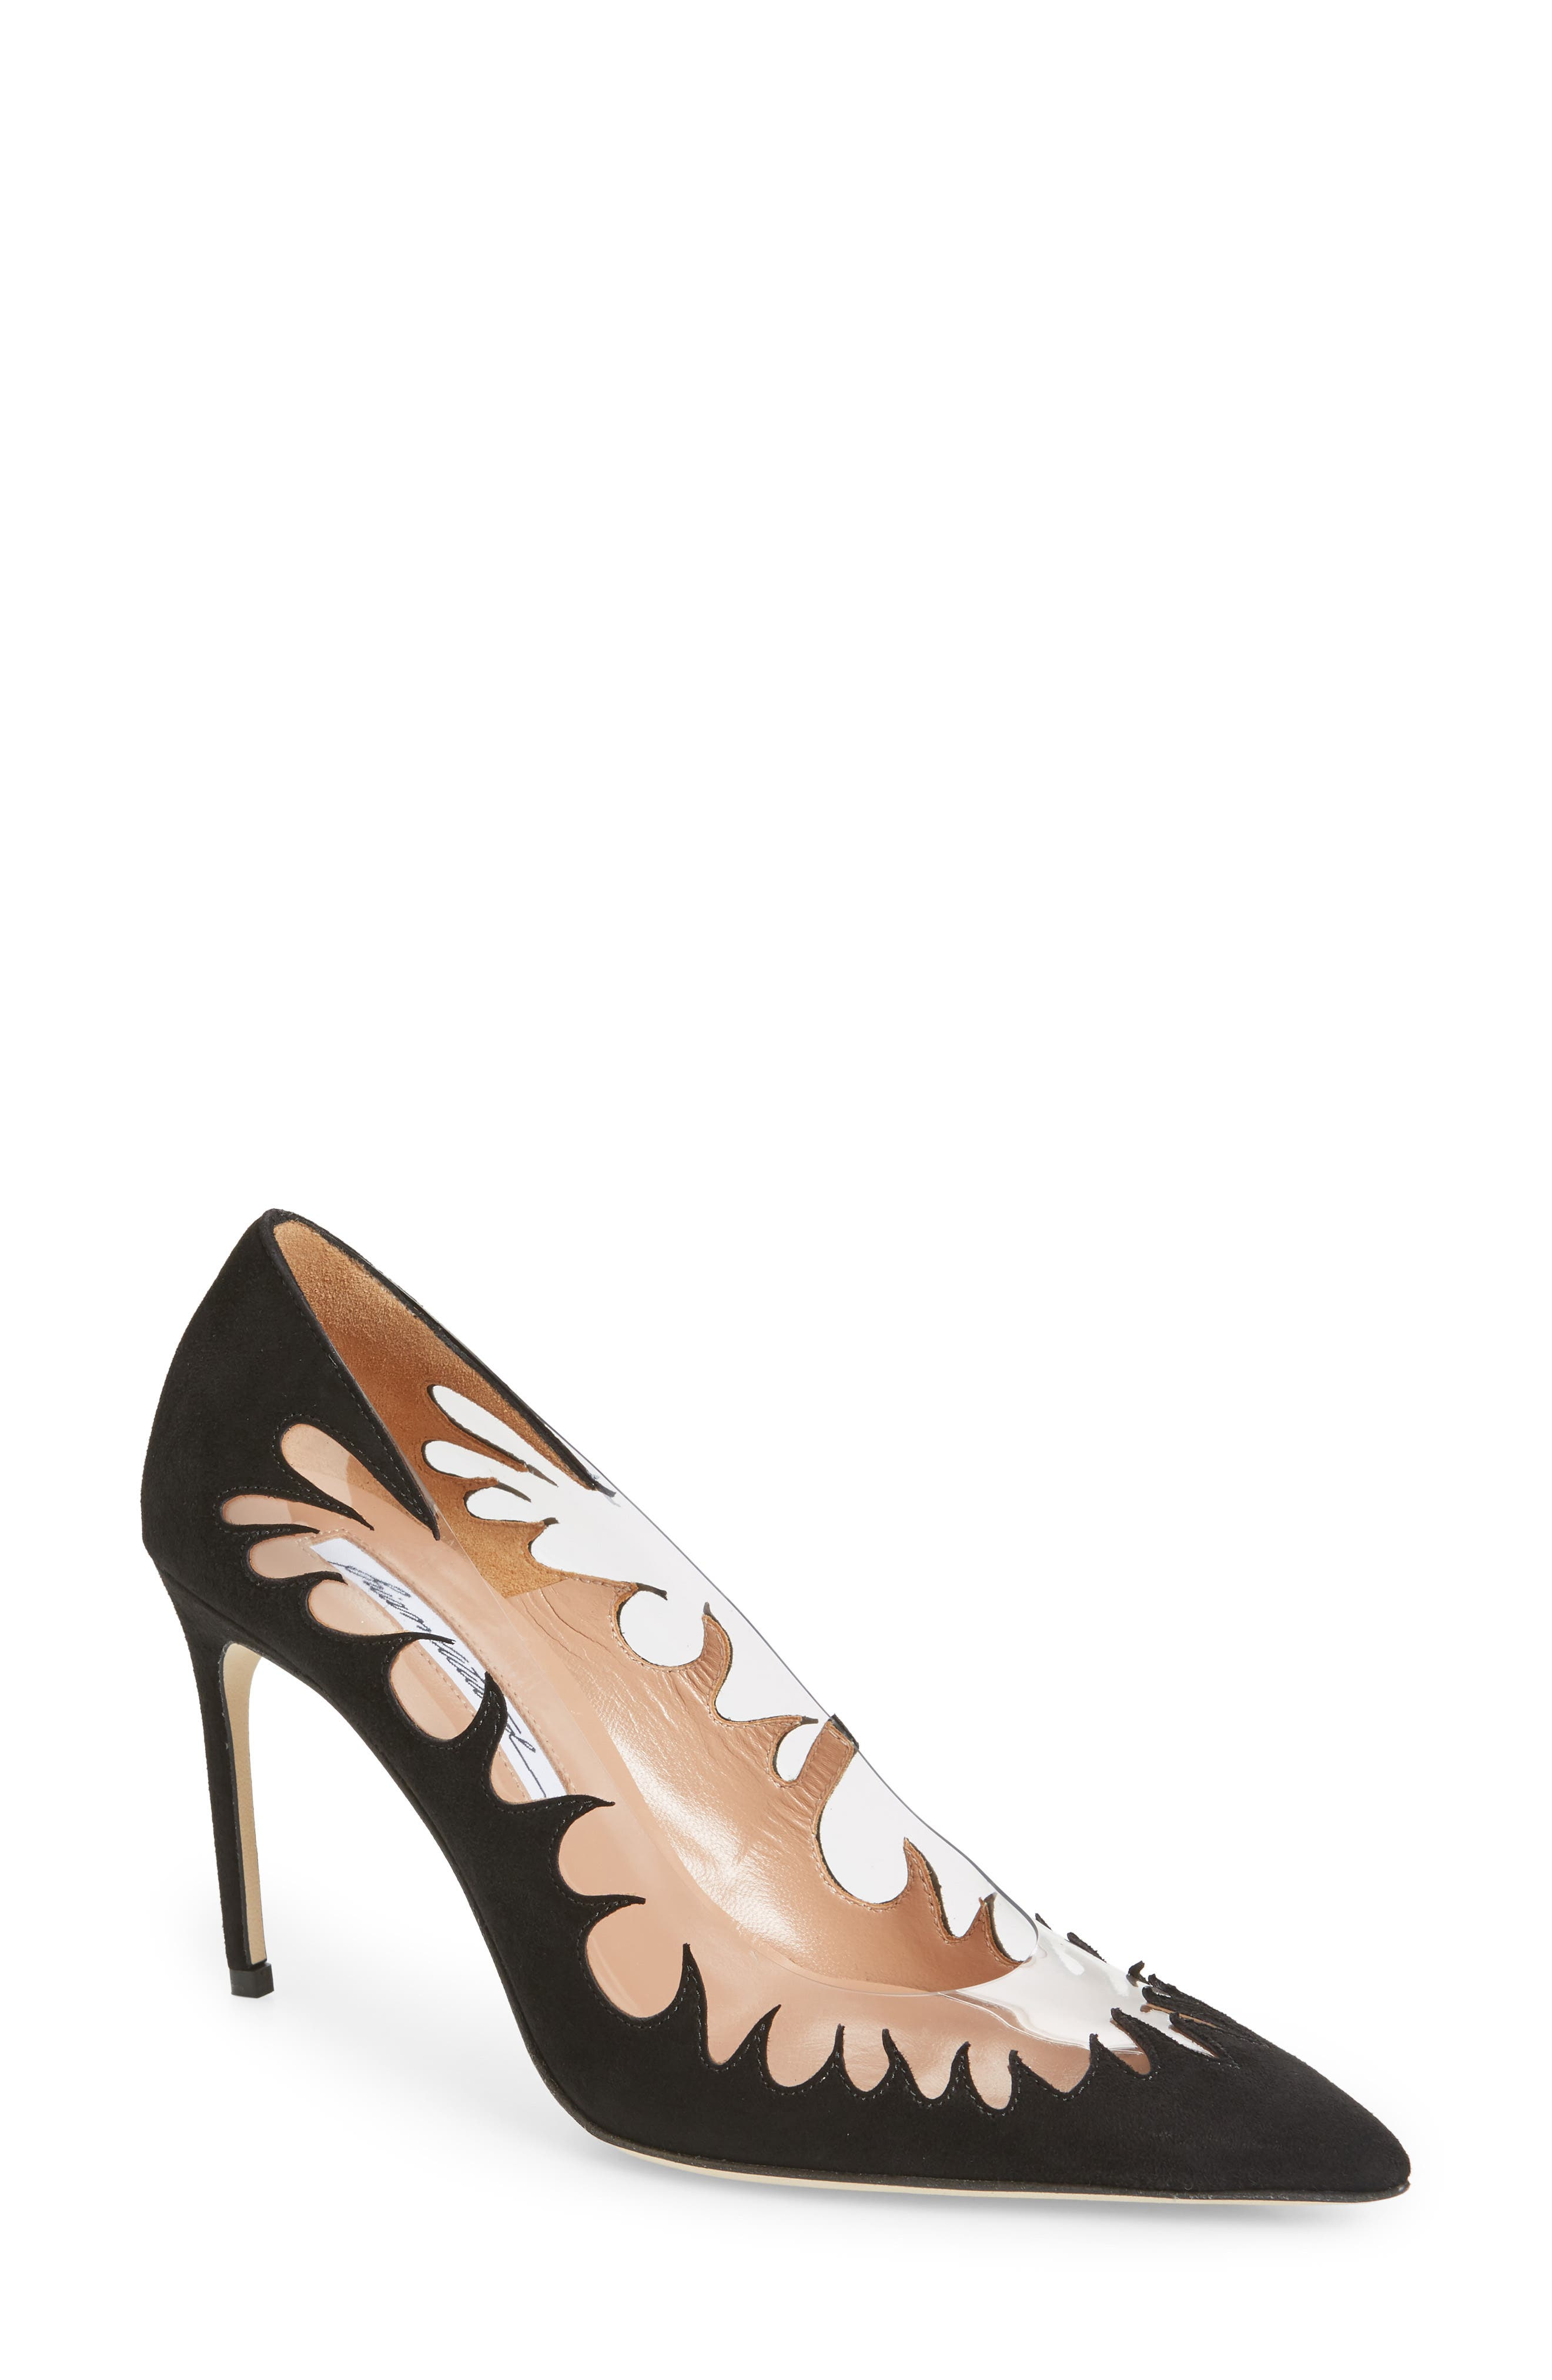 BRIAN ATWOOD Women'S Victory Suede Cutout Pointed Toe Pumps in Black Suede